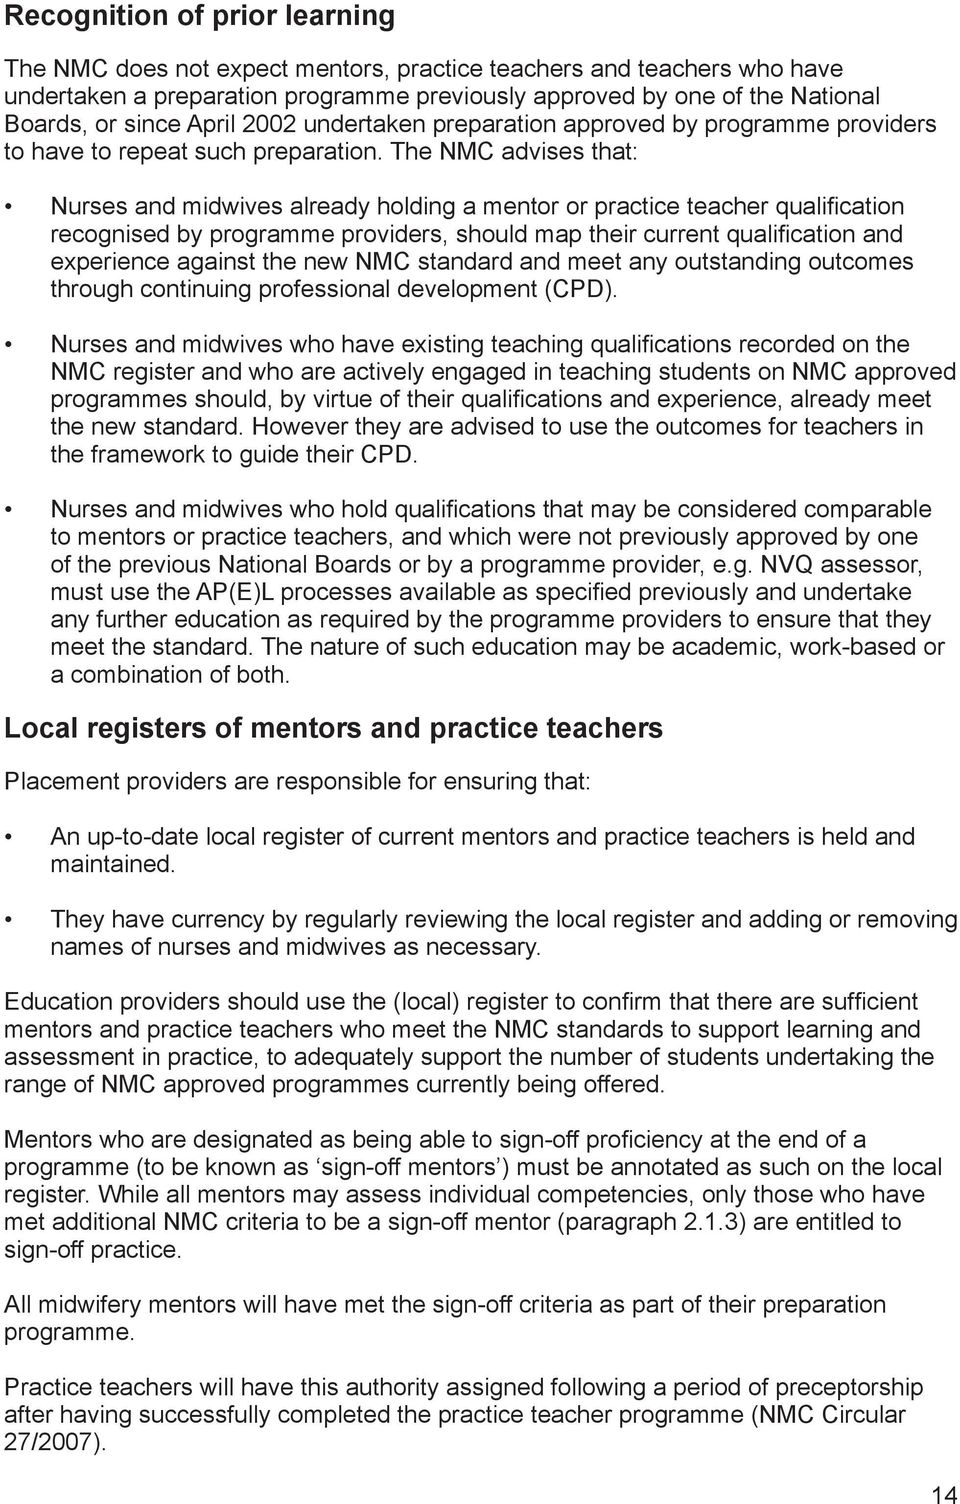 The NMC advises that: Nurses and midwives already holding a mentor or practice teacher qualification recognised by programme providers, should map their current qualification and experience against